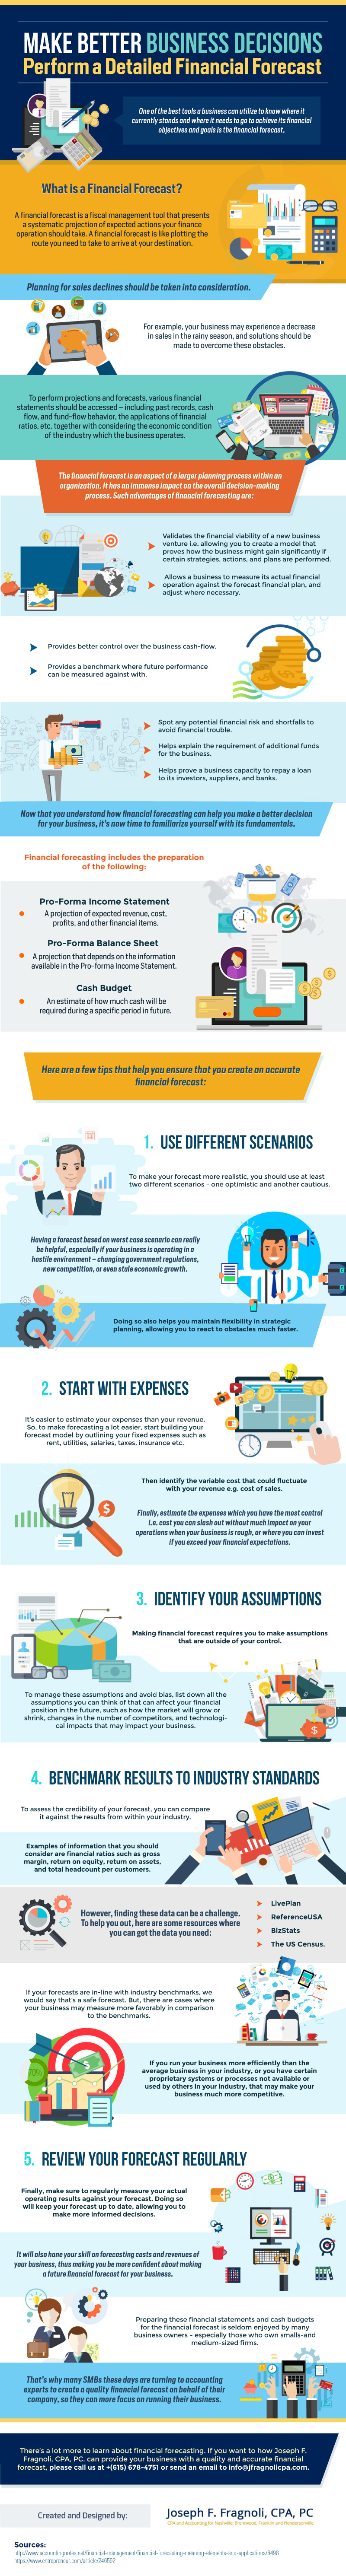 Make Better Business Decisions [Infographic]